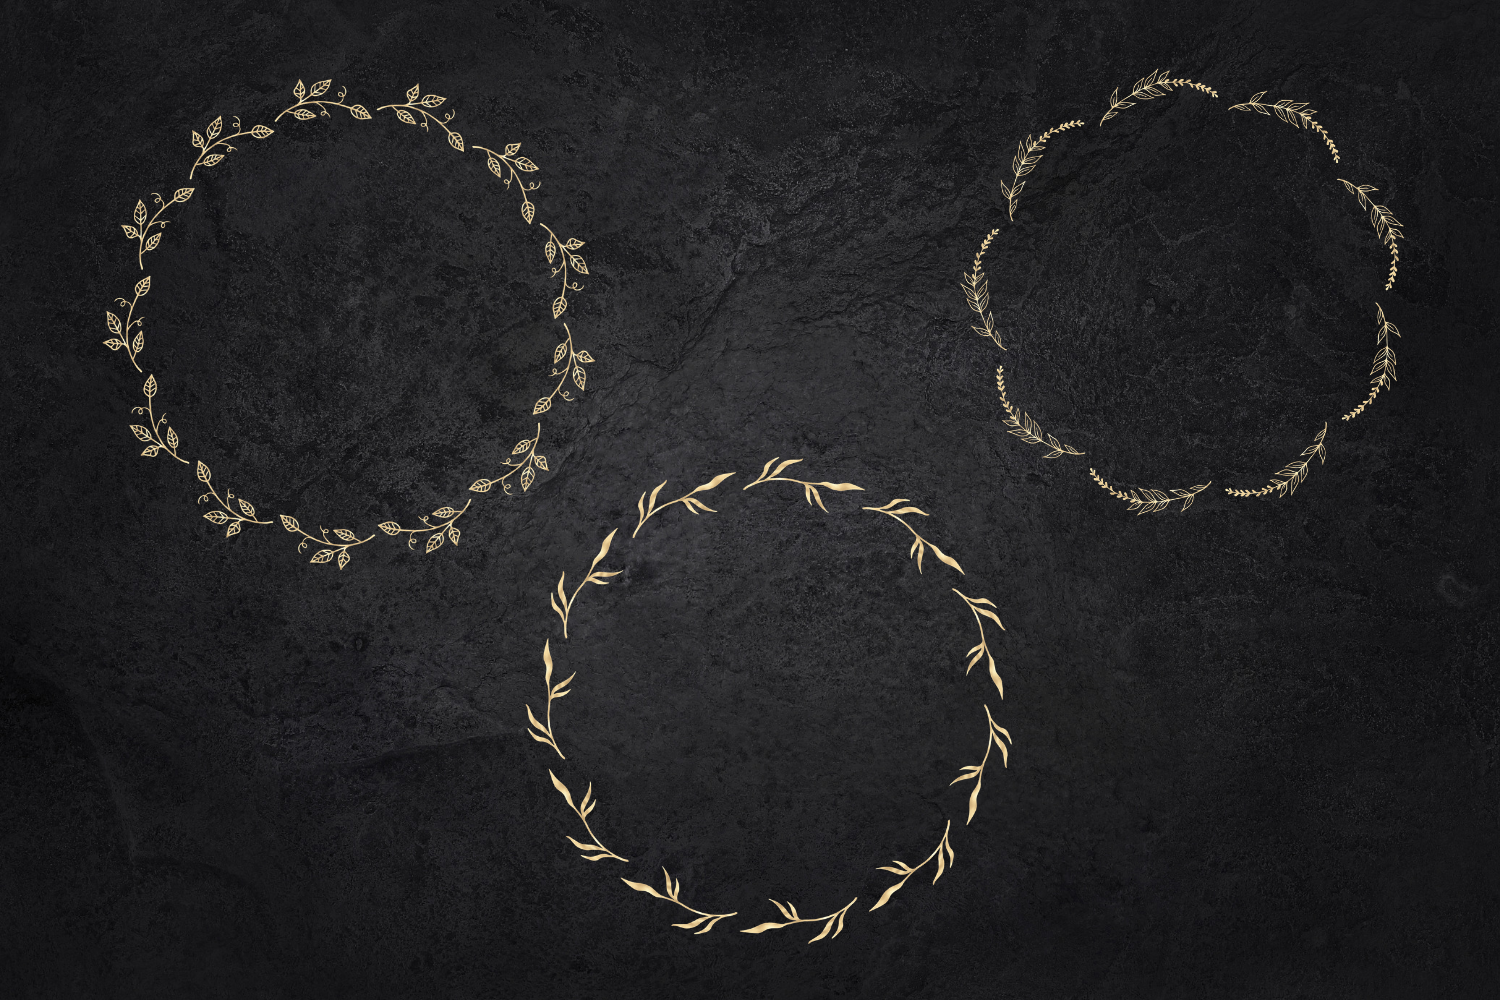 25 Gold wreaths clipart, Delicate Gold hand drawn overlay example image 9